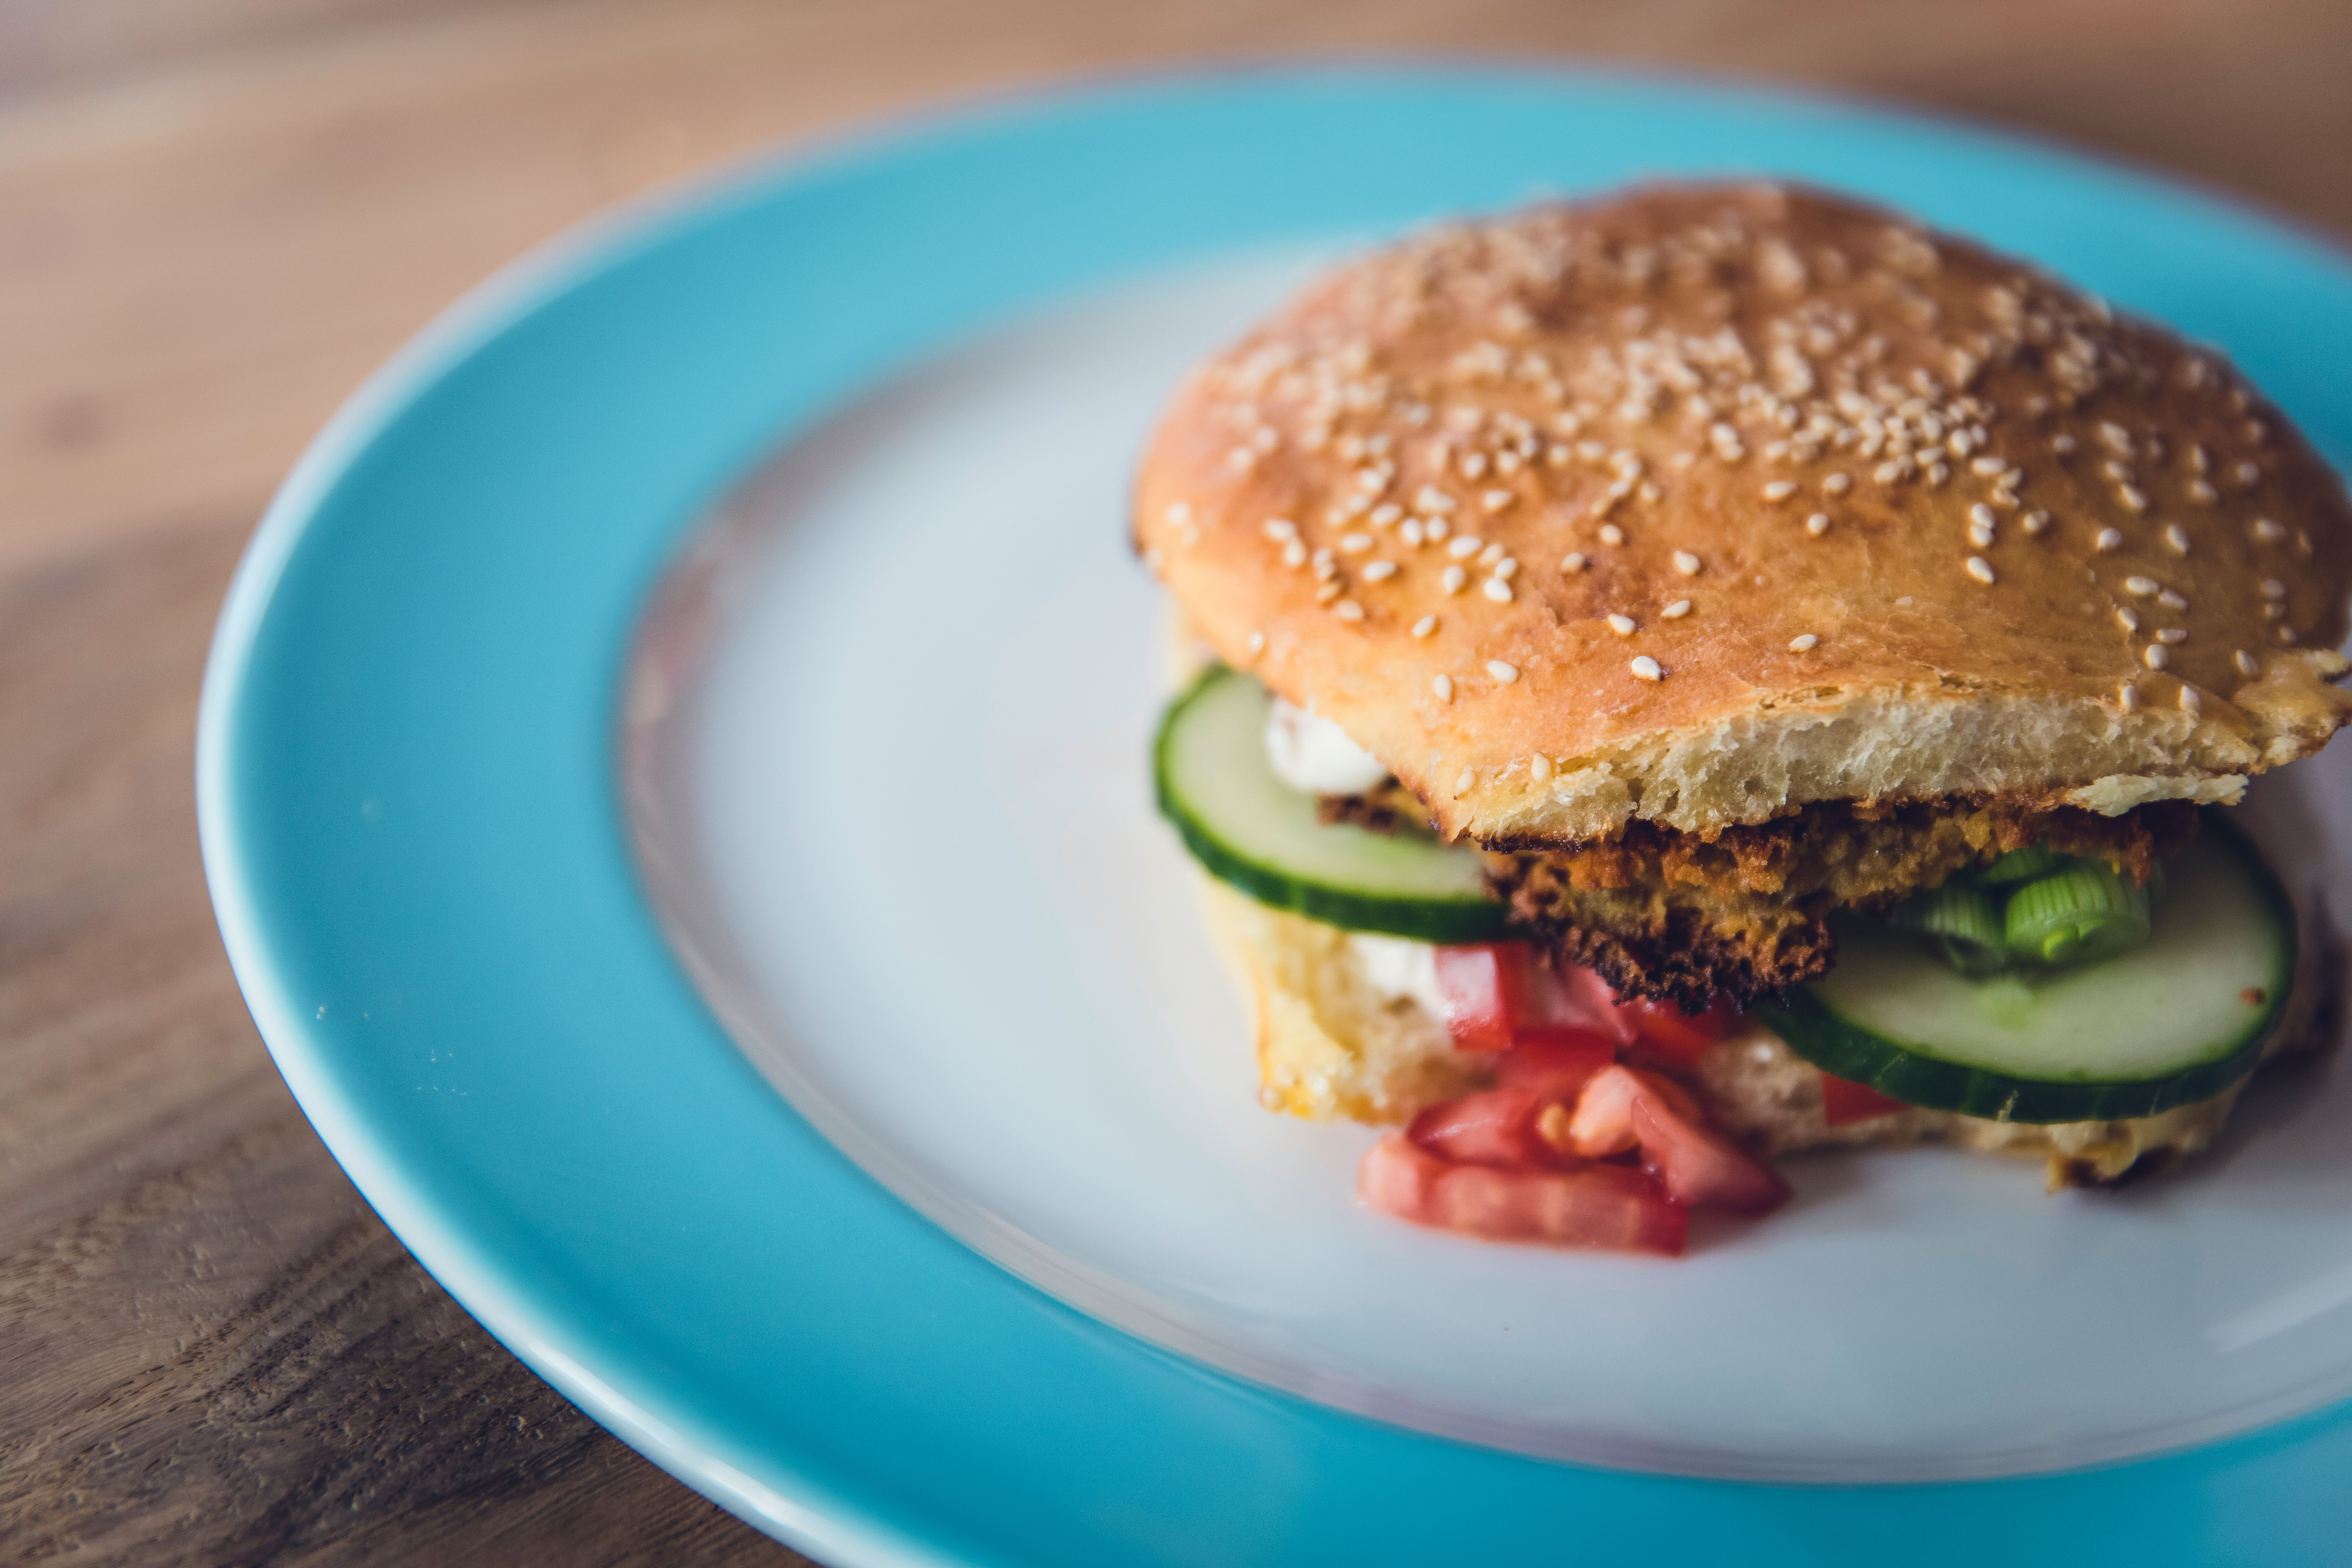 Vegetarian burger on hamburger bun with cucumbers and tomatoes on blue and white plate